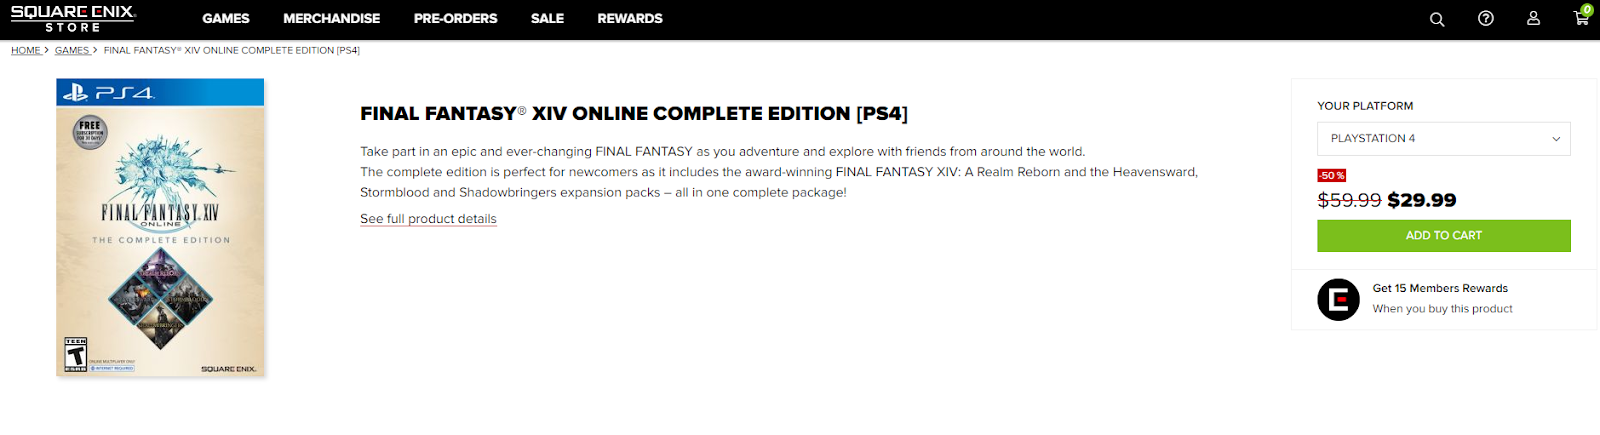 Pricing Complete Edition